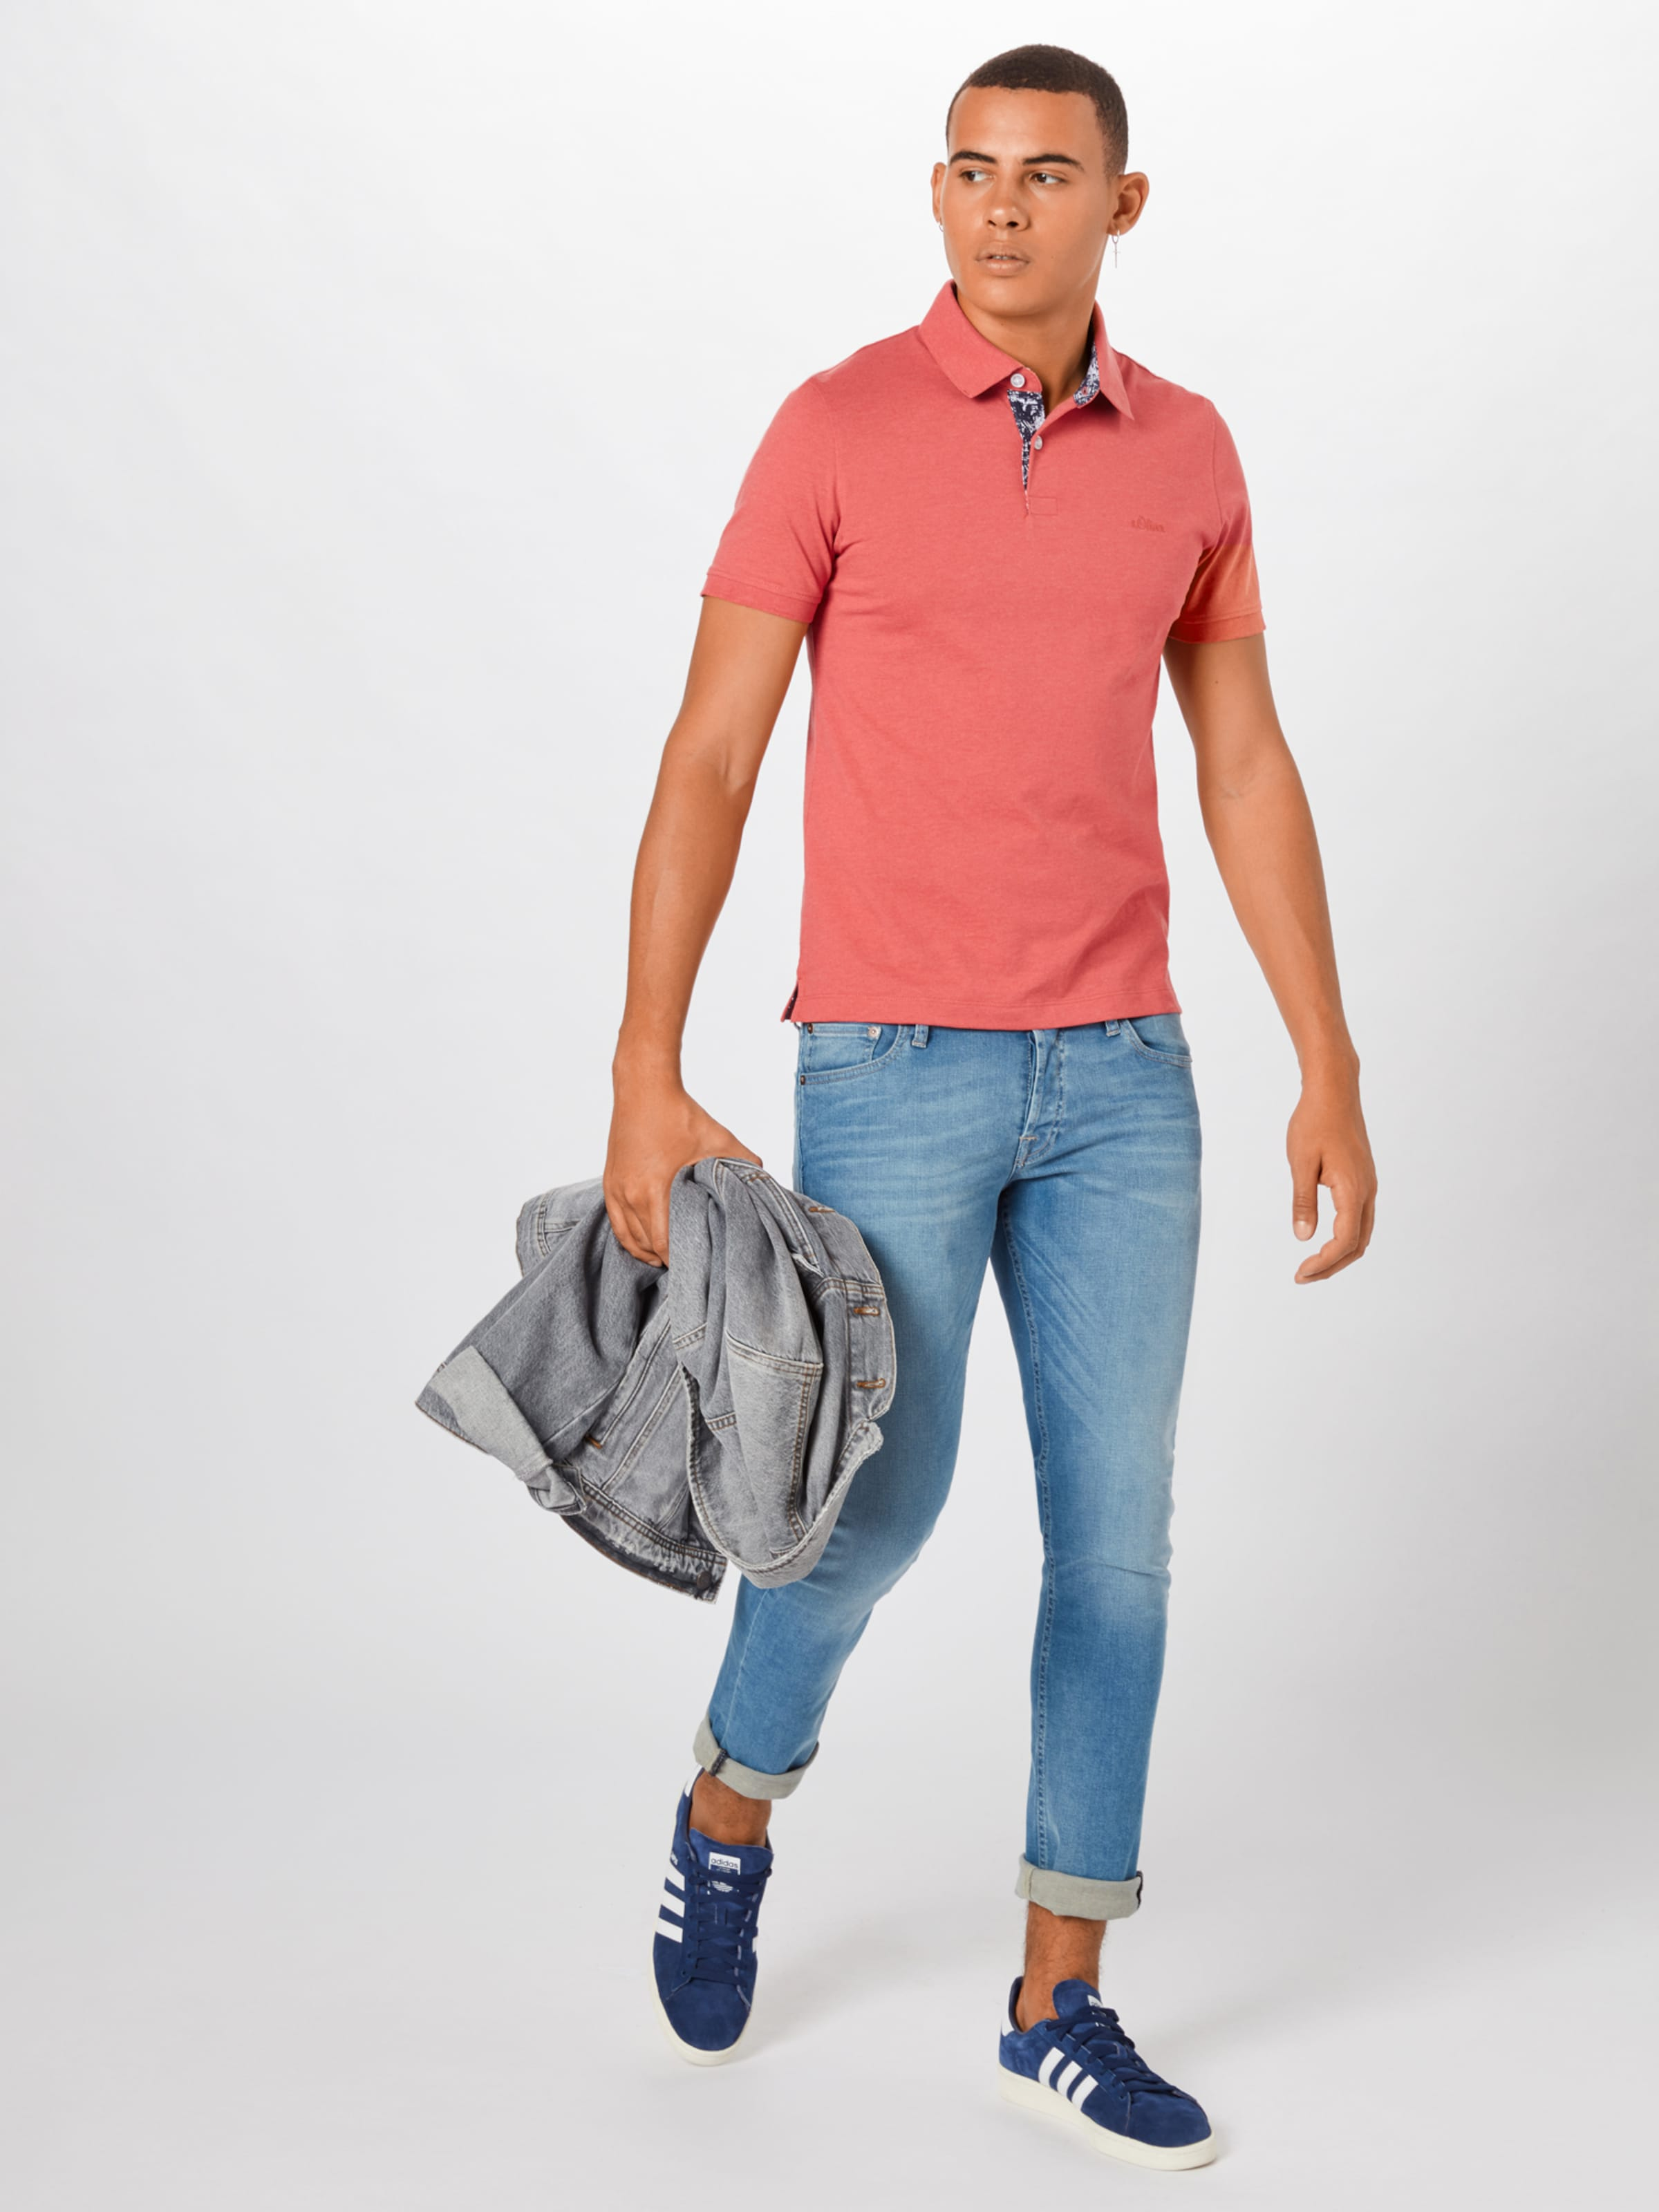 S oliver Red In RotWeiß Label Poloshirt Y7ybf6g